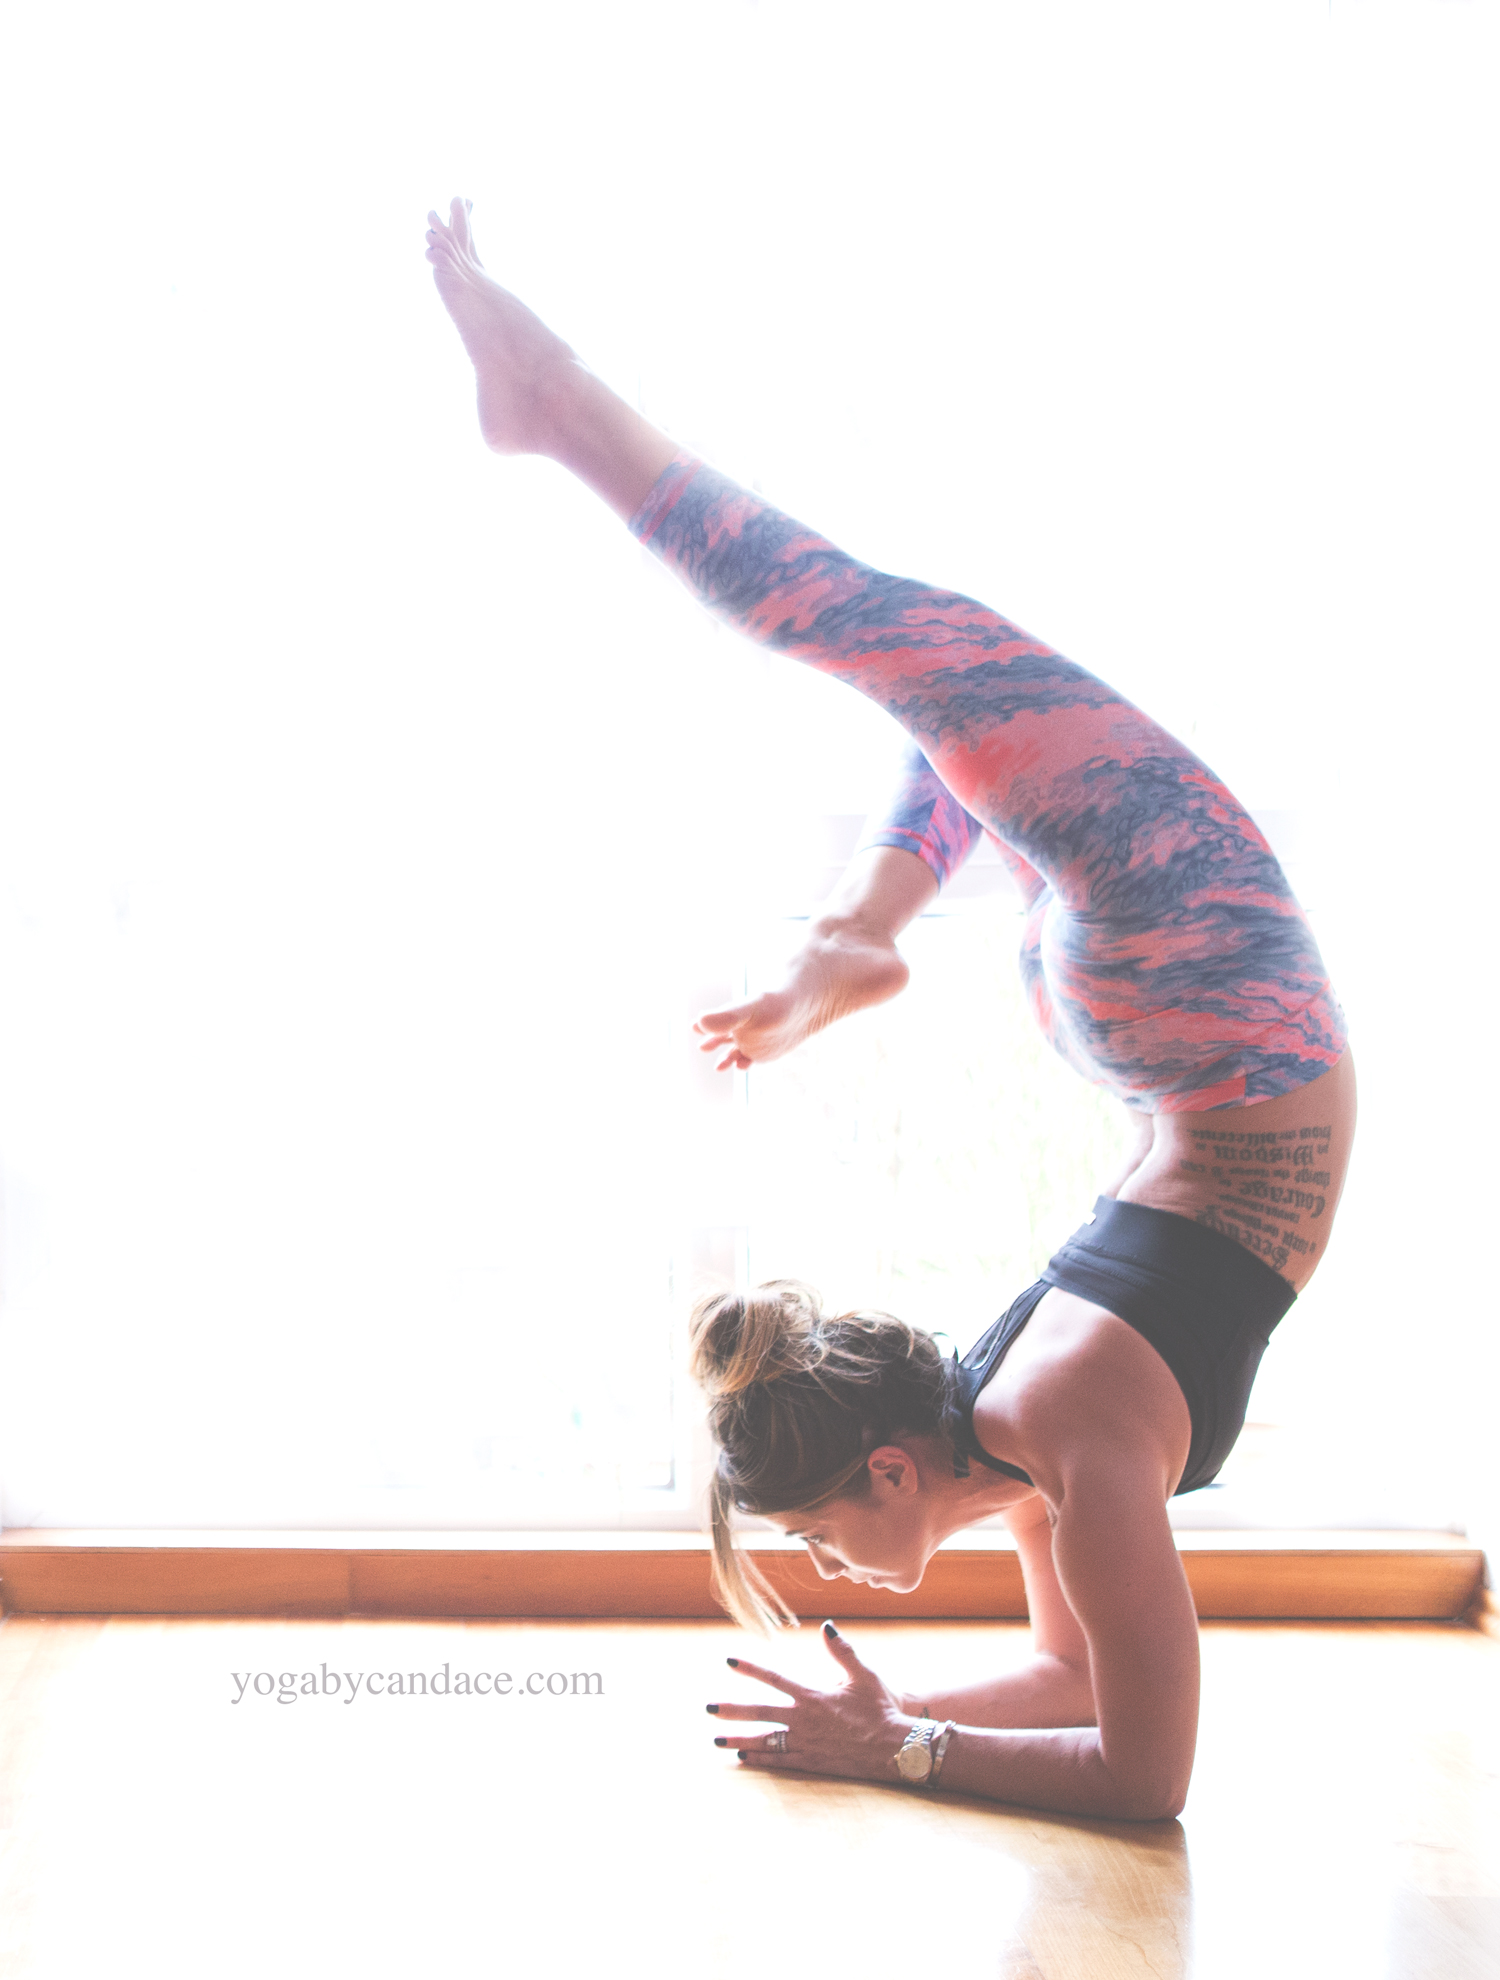 Pin now, practice later! Week 4 of the Backbend Project  Wearing: leggings, bra.